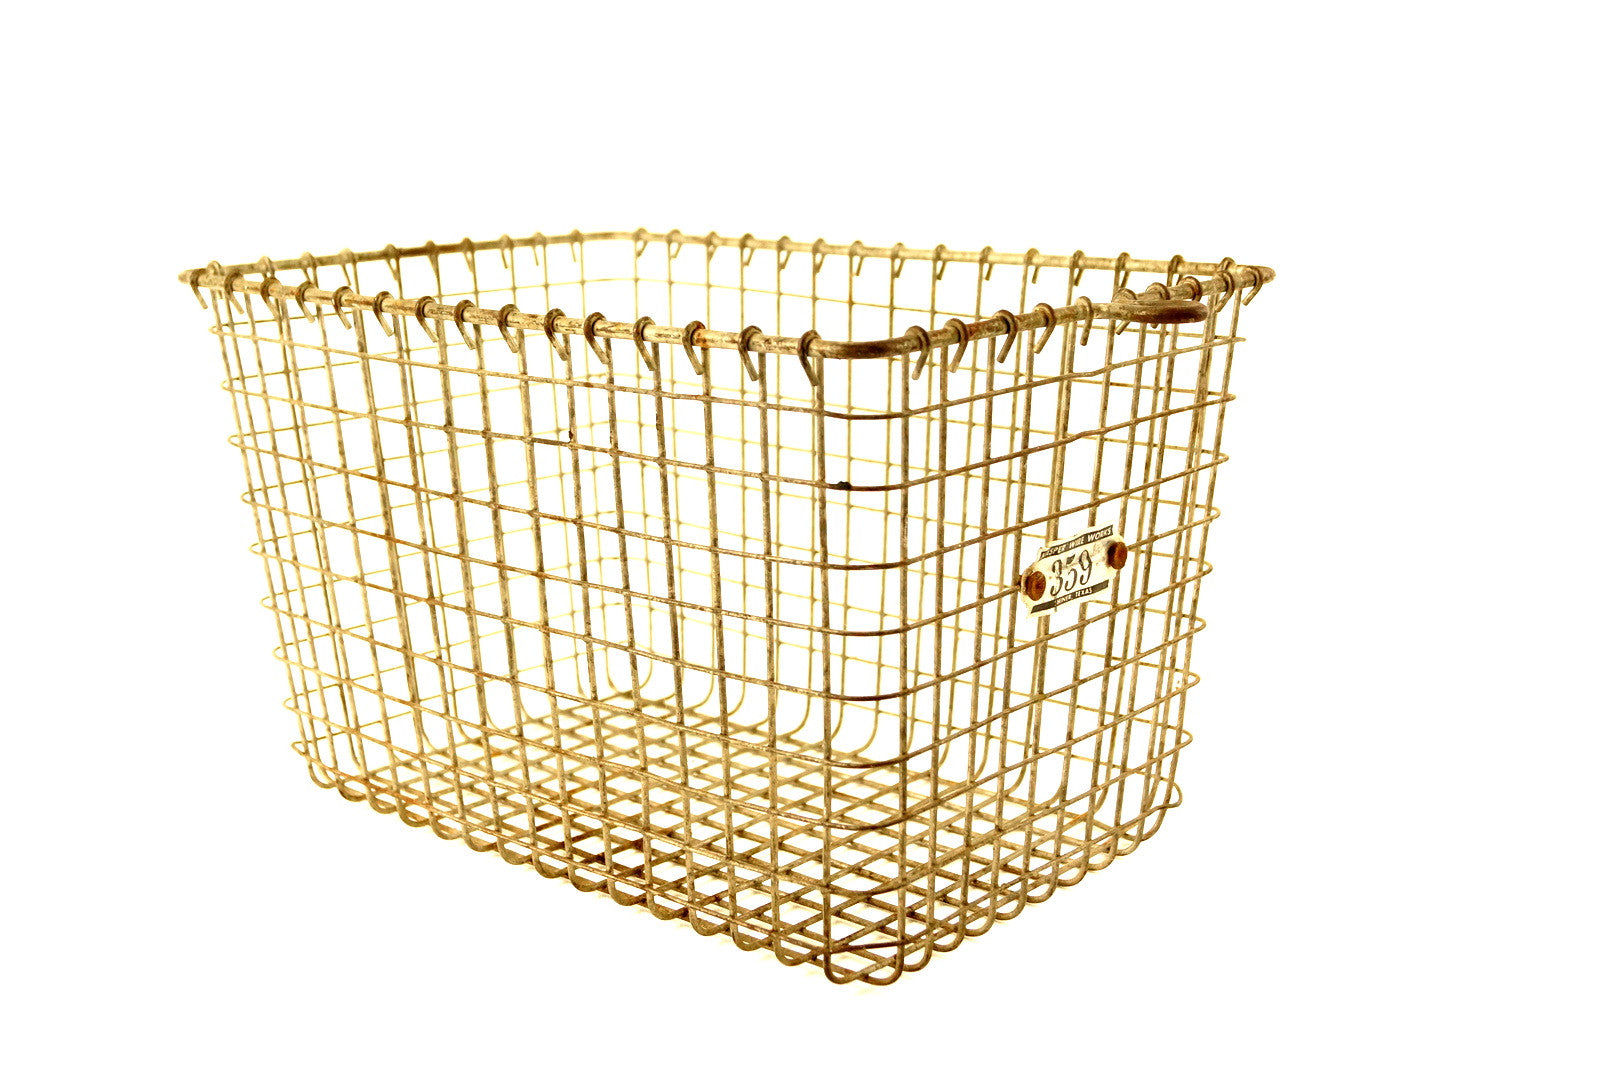 Vintage Metal Wire Locker Basket with Number 359 Tag (c.1950s ...